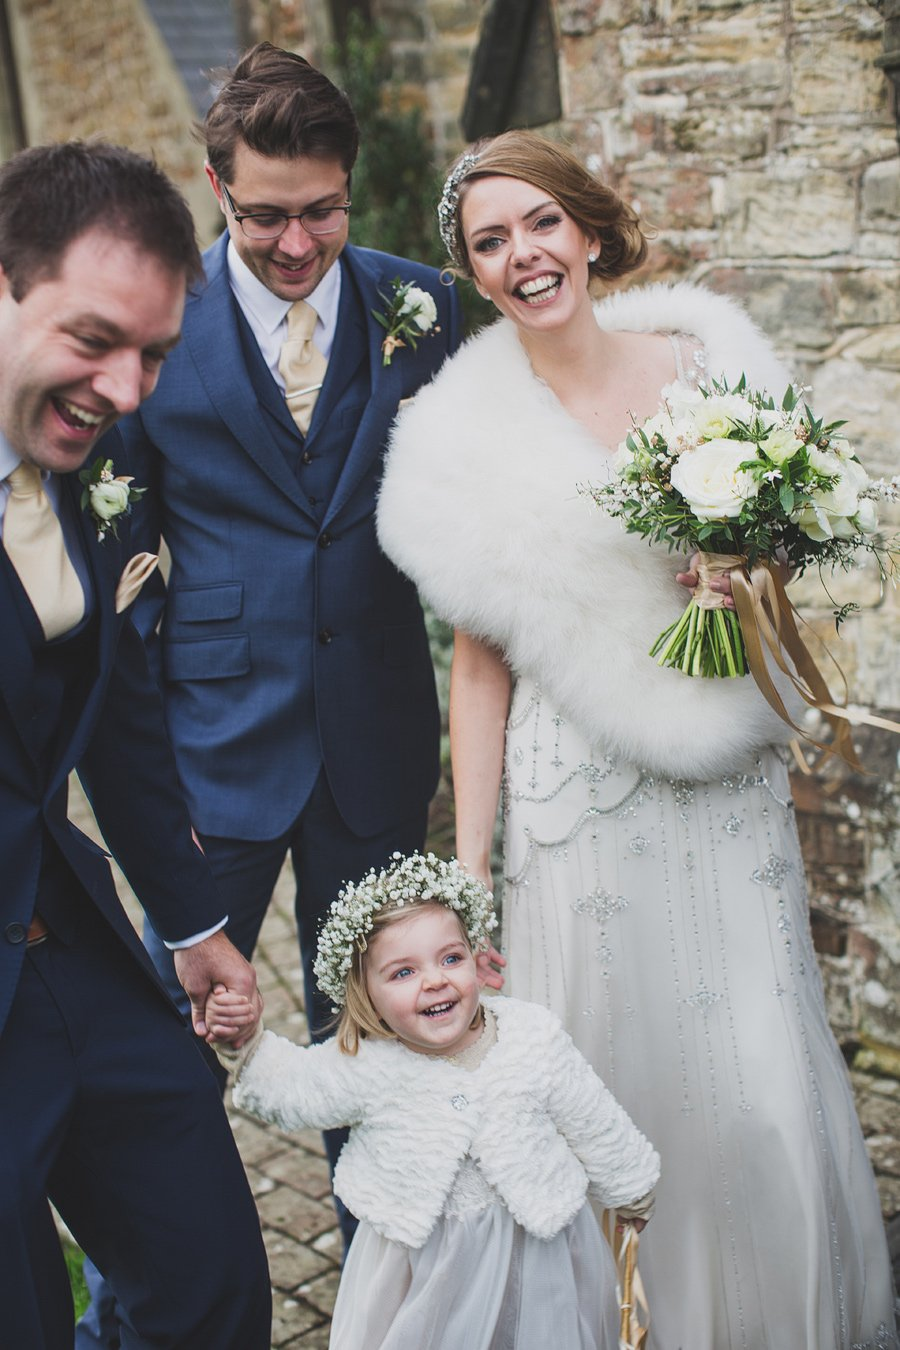 Buxted-Park-Wedding-Photographer-Suzanne-and-Matt-Simon-Fazackarley-36